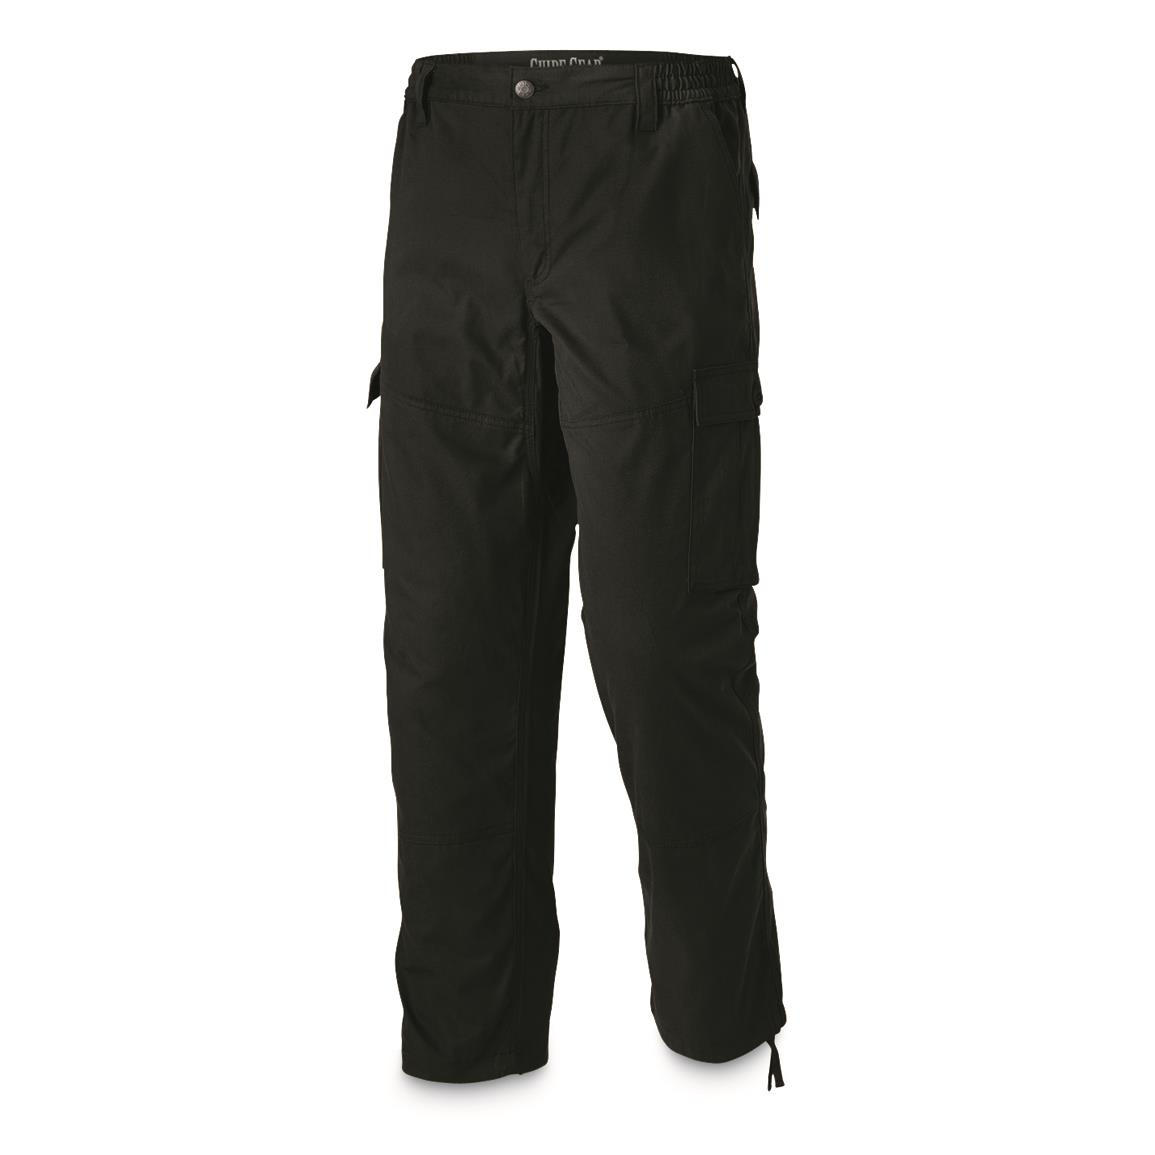 Guide Gear Men's 6-Pocket Duck Cargo Pants, Black